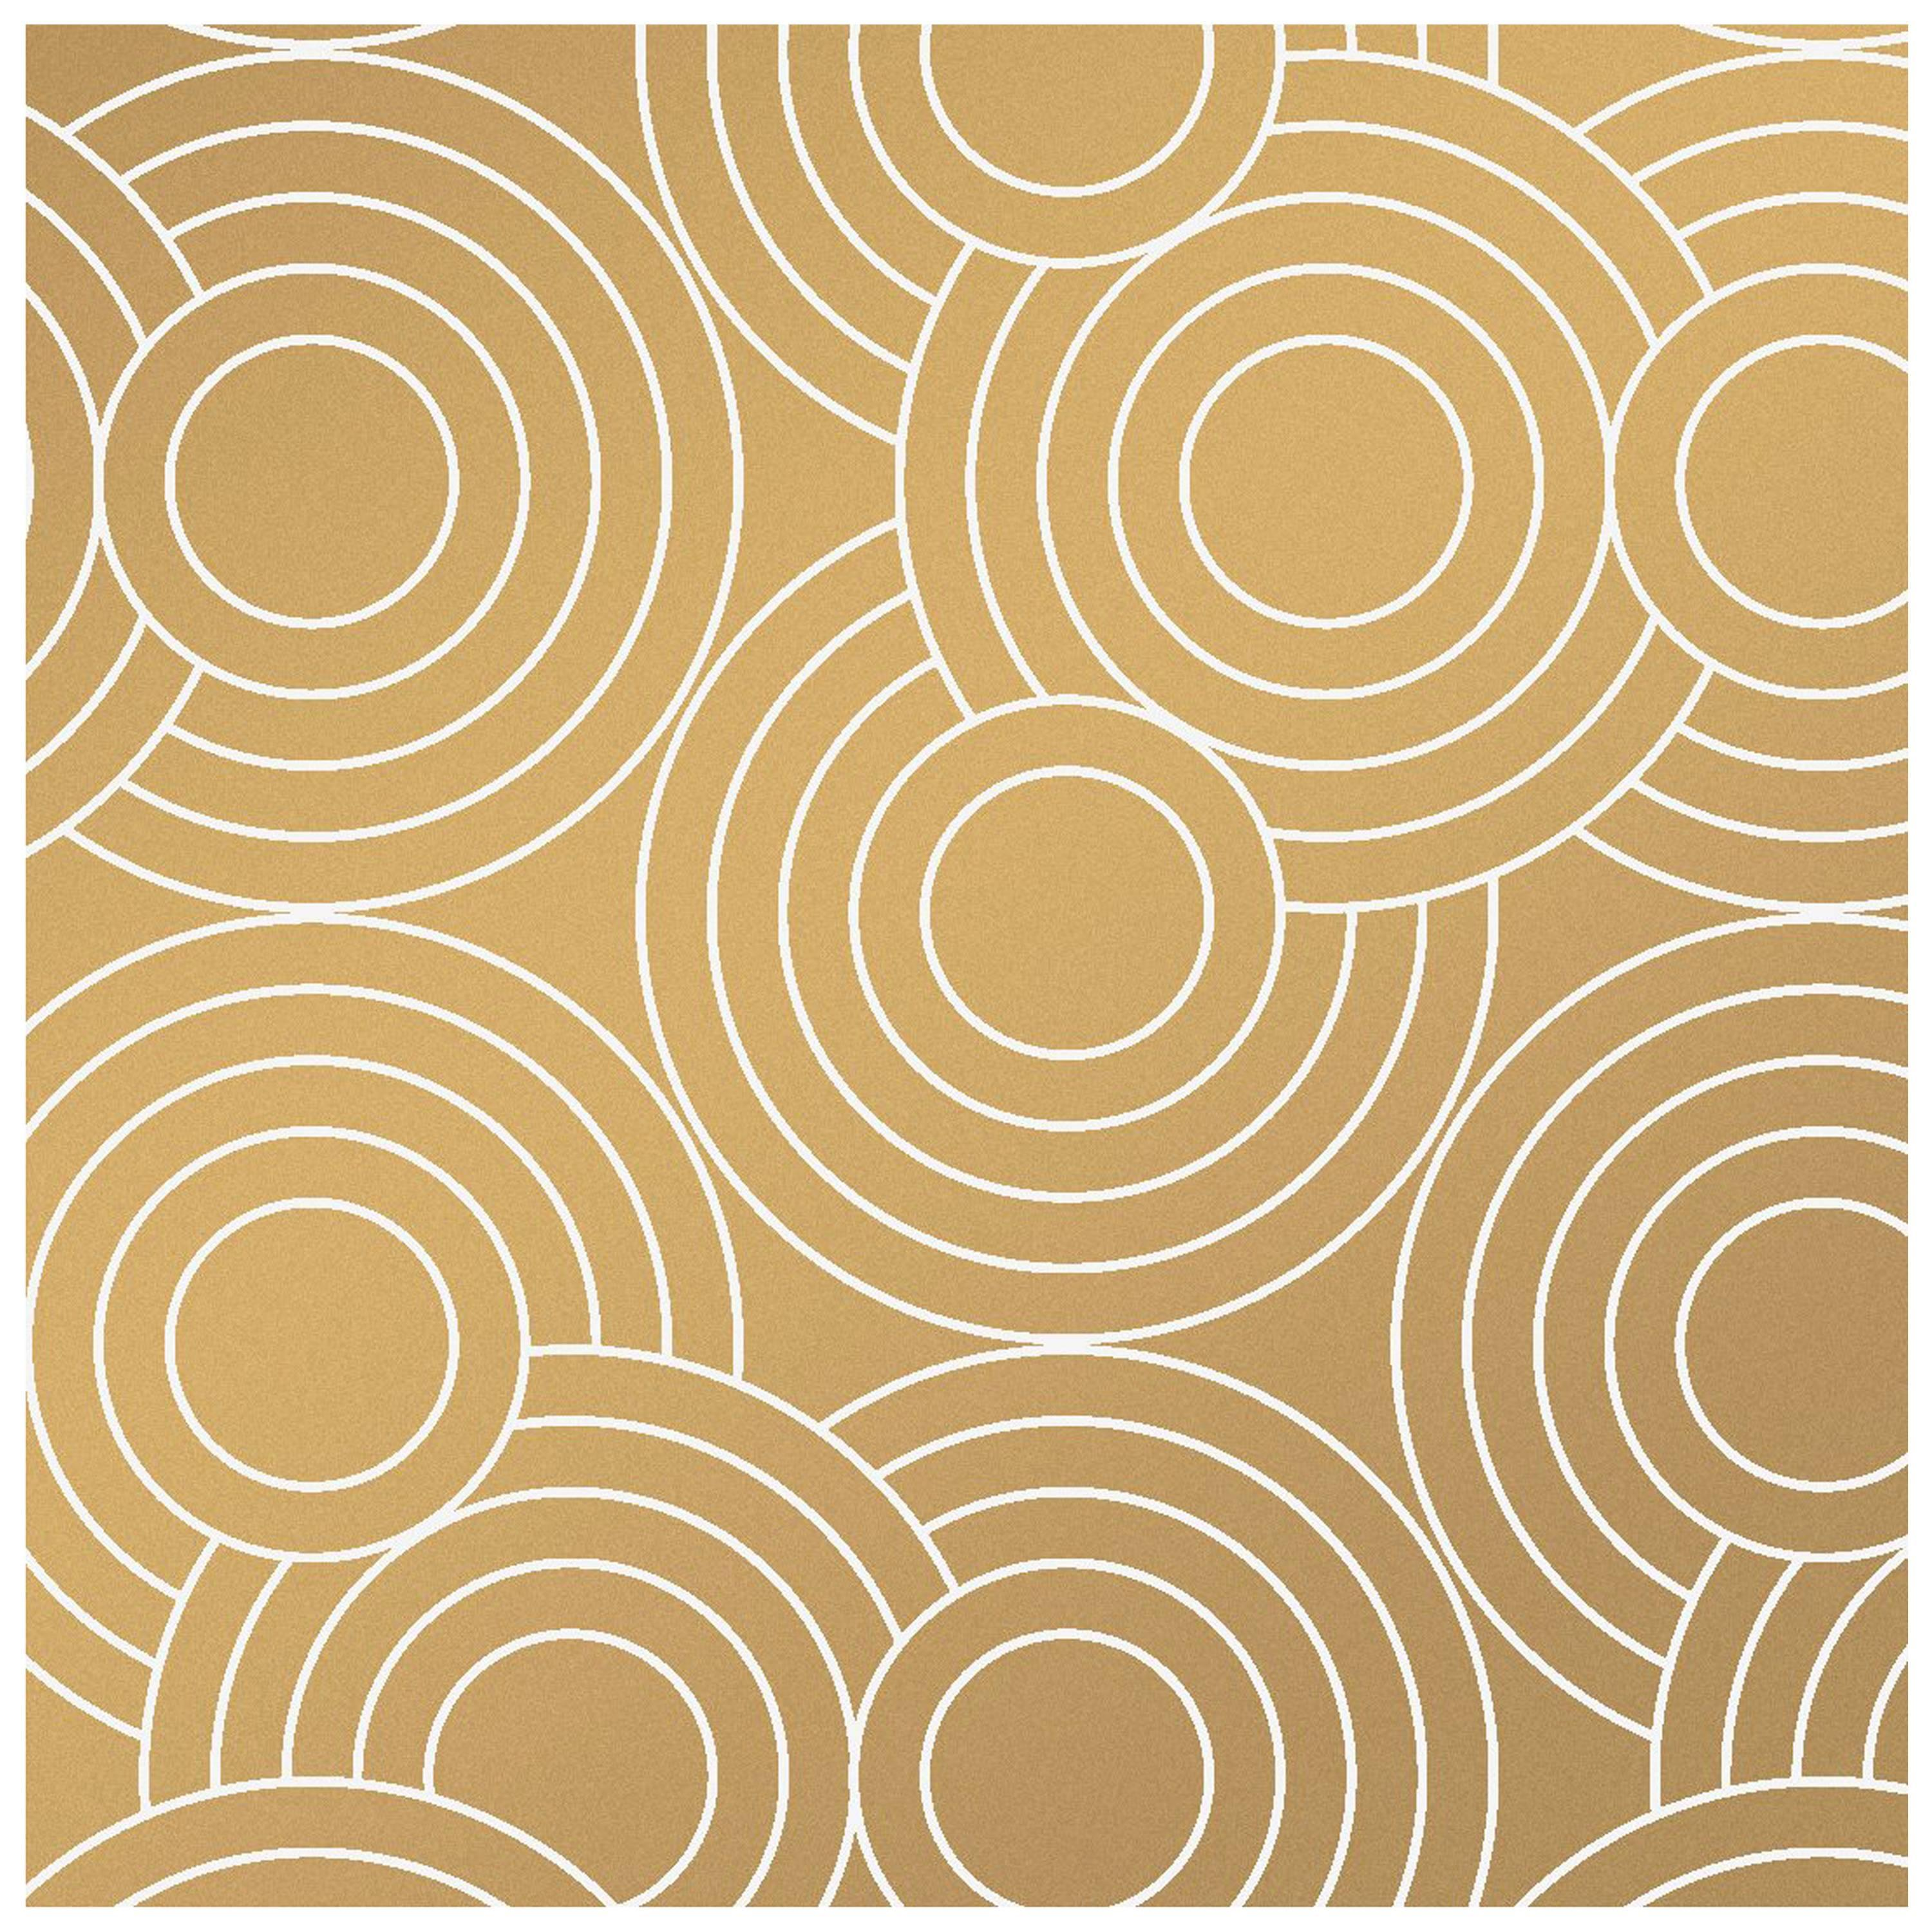 Metallic Gold Wallpaper Crop Circles Designer Wallpaper In Color Sphinx White On Metallic Gold